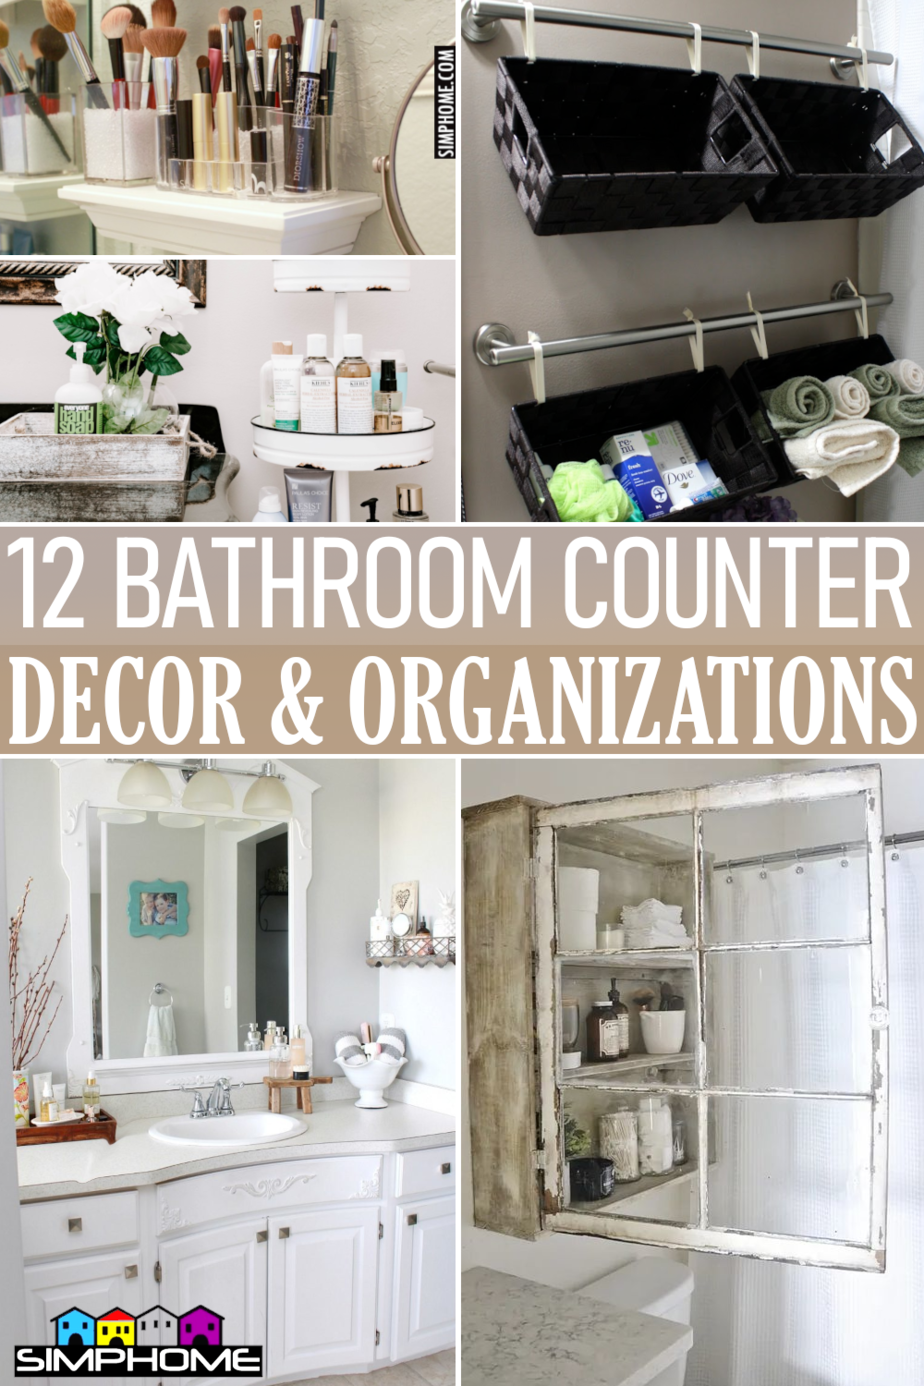 12 Bathroom Counter Decor and Organizations By Simphome.comFeatured